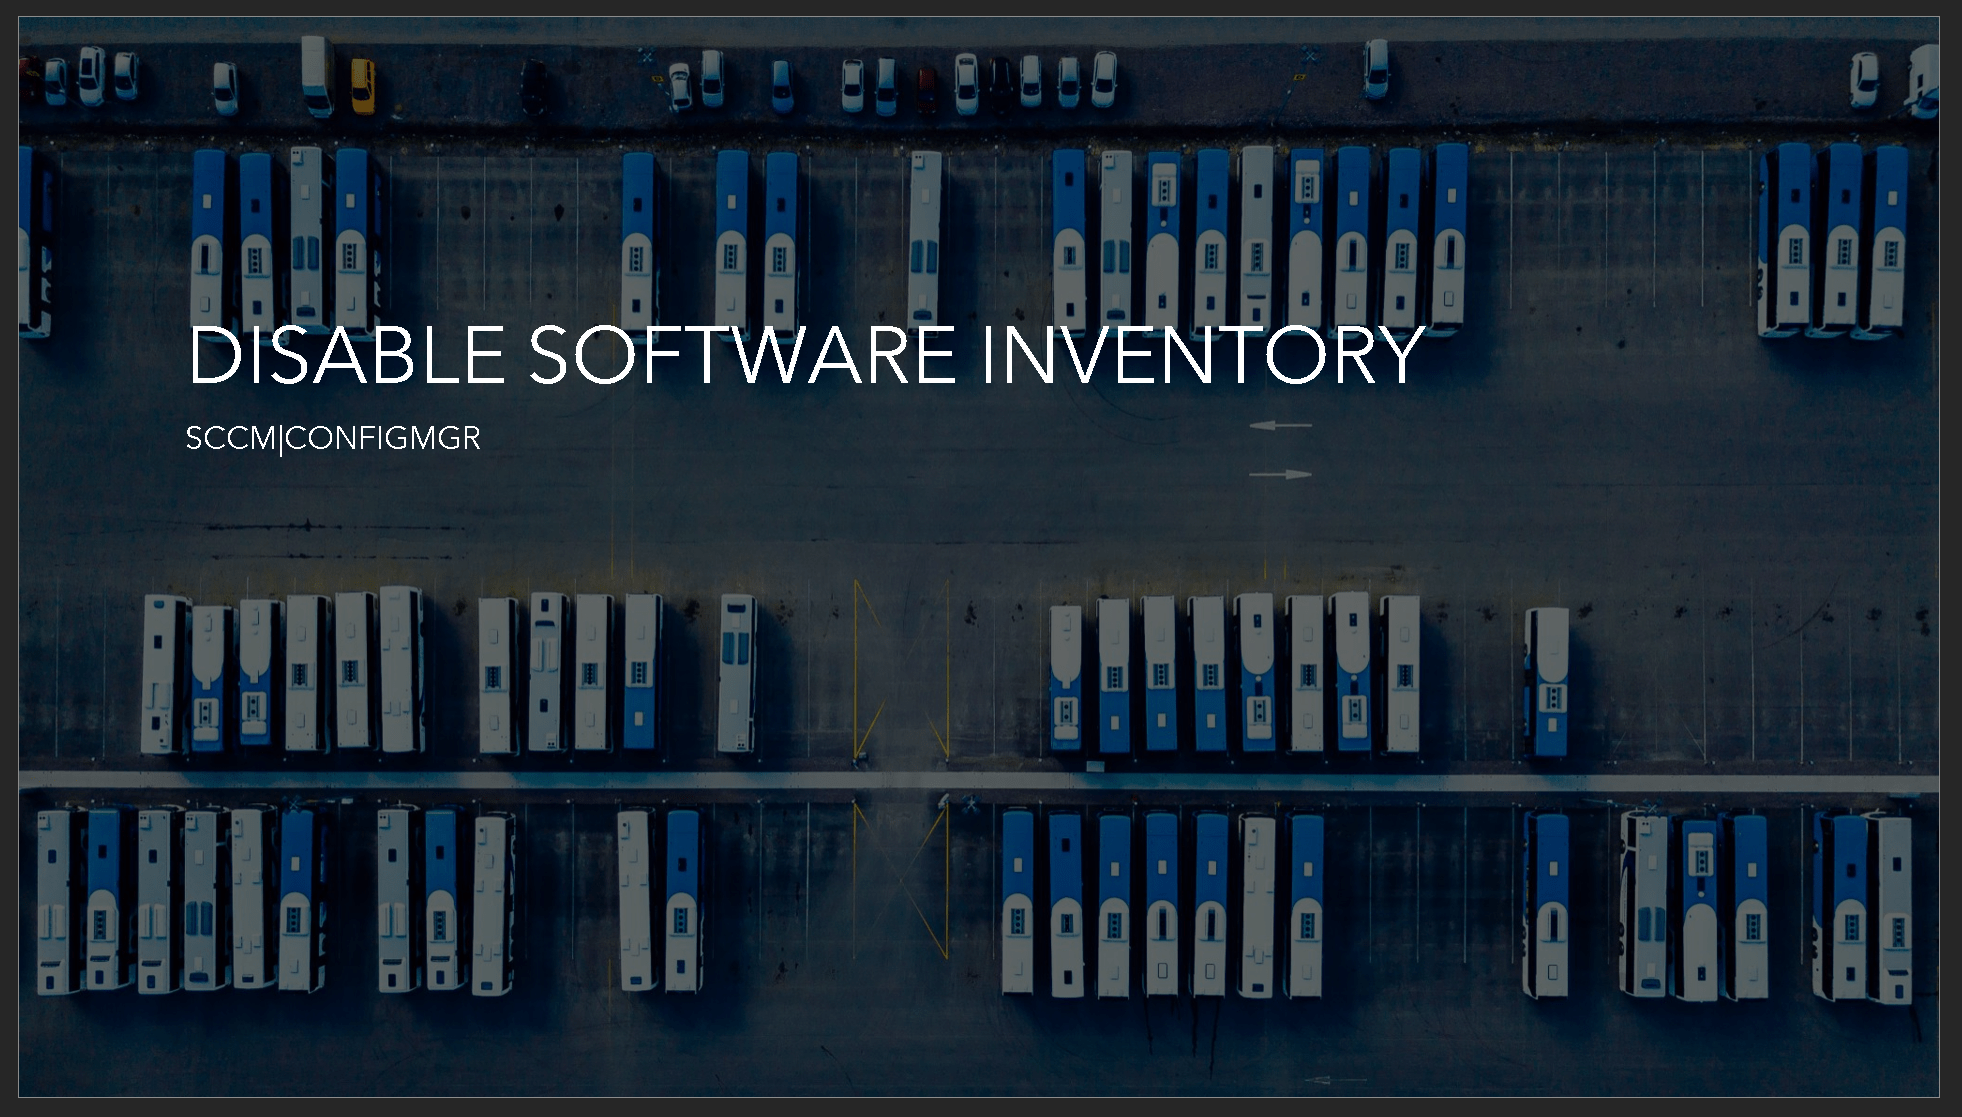 Disable Software Inventory